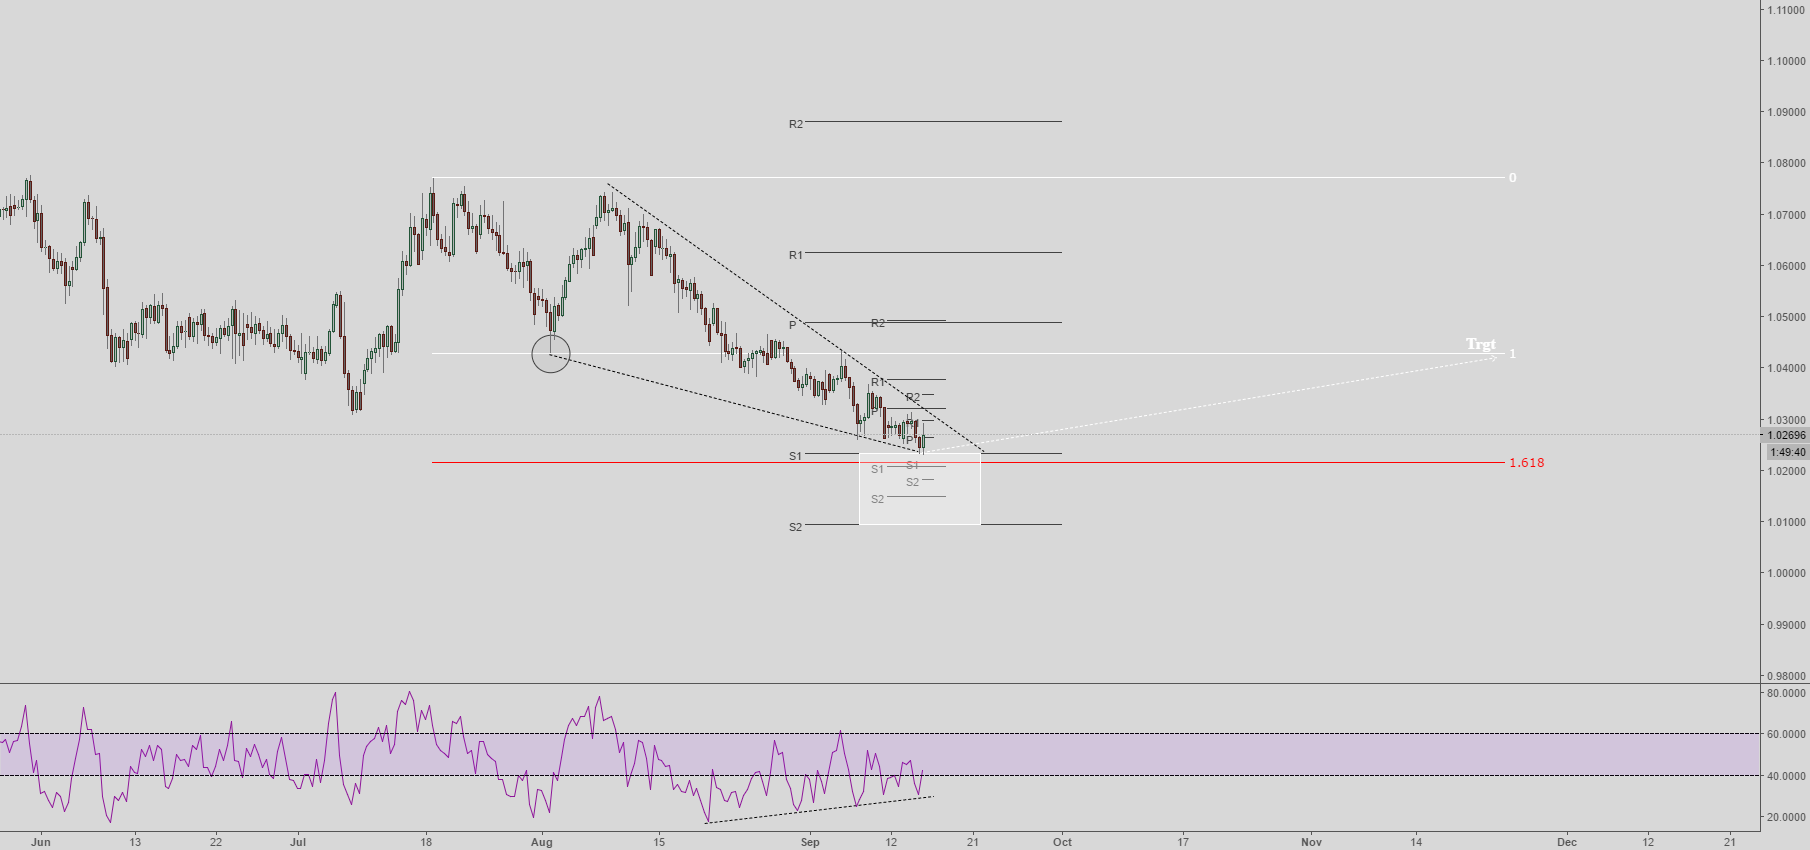 Going Long AUDNZD